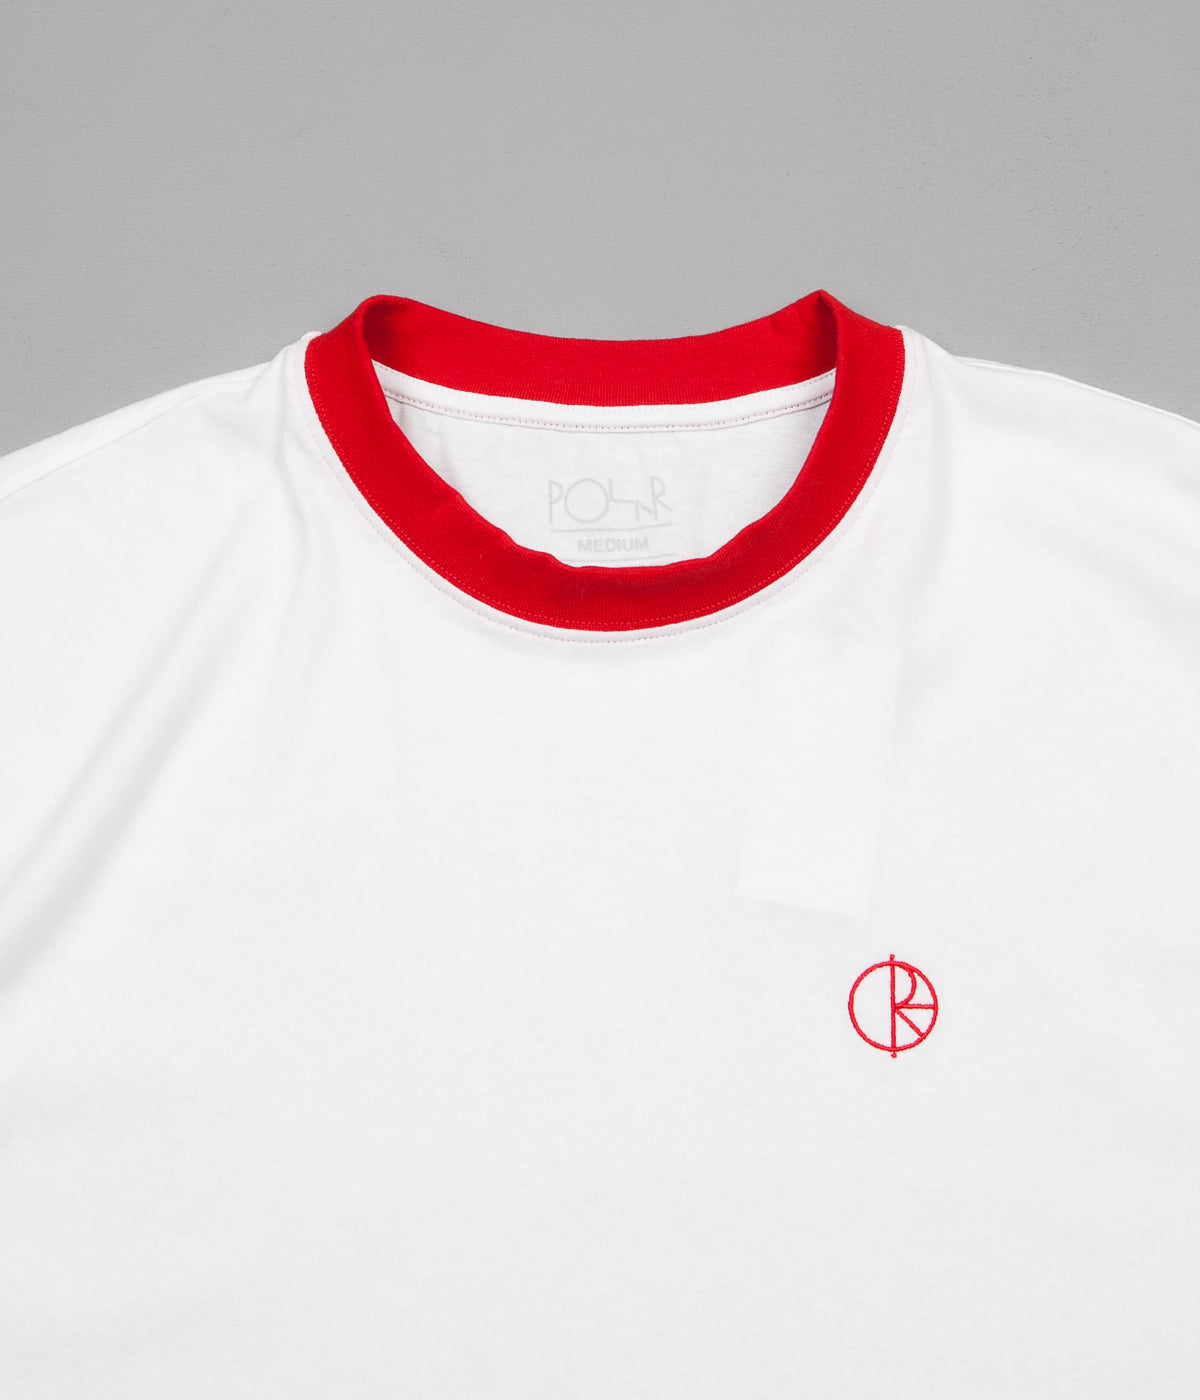 Polar Ringer T-Shirt - White / Red